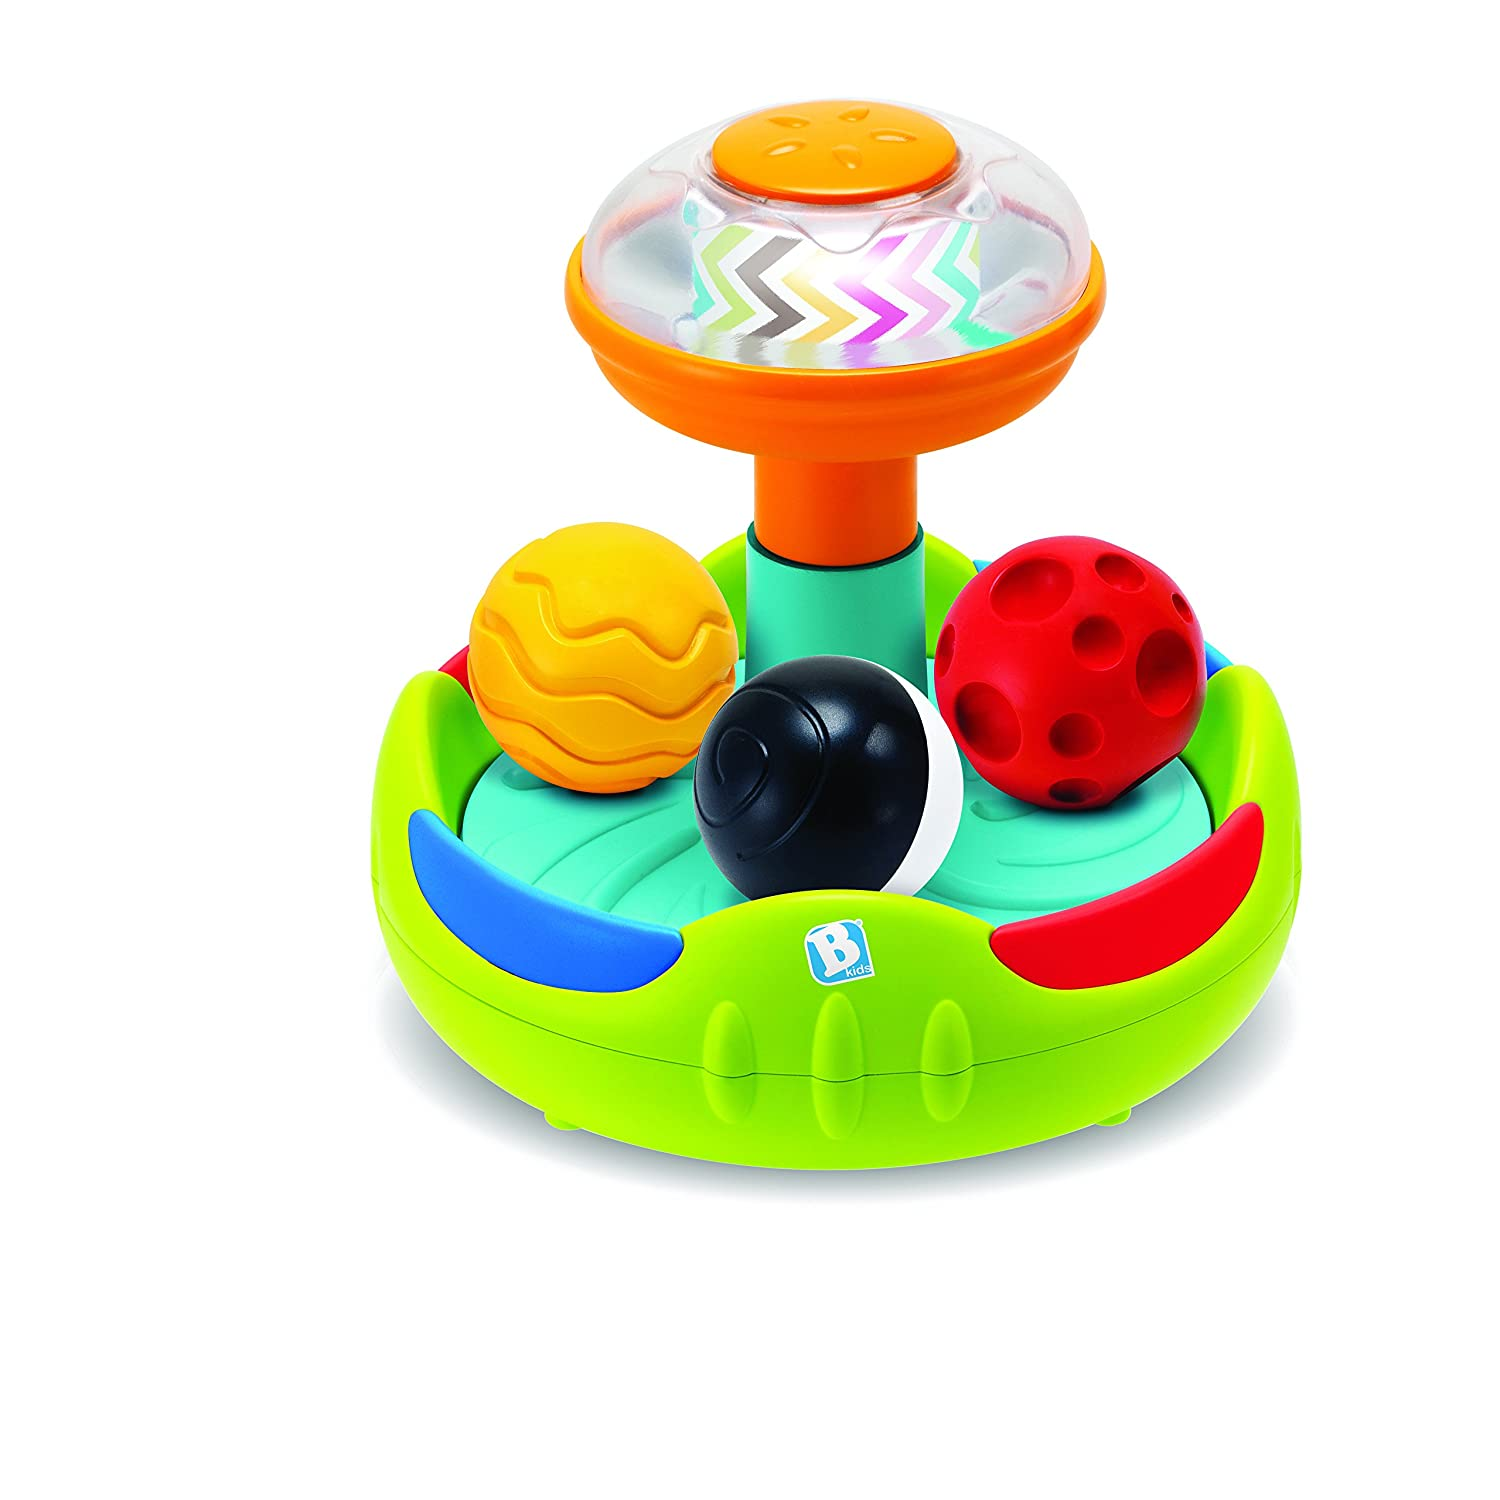 Infantino Senso Ball Spinning Top 005353